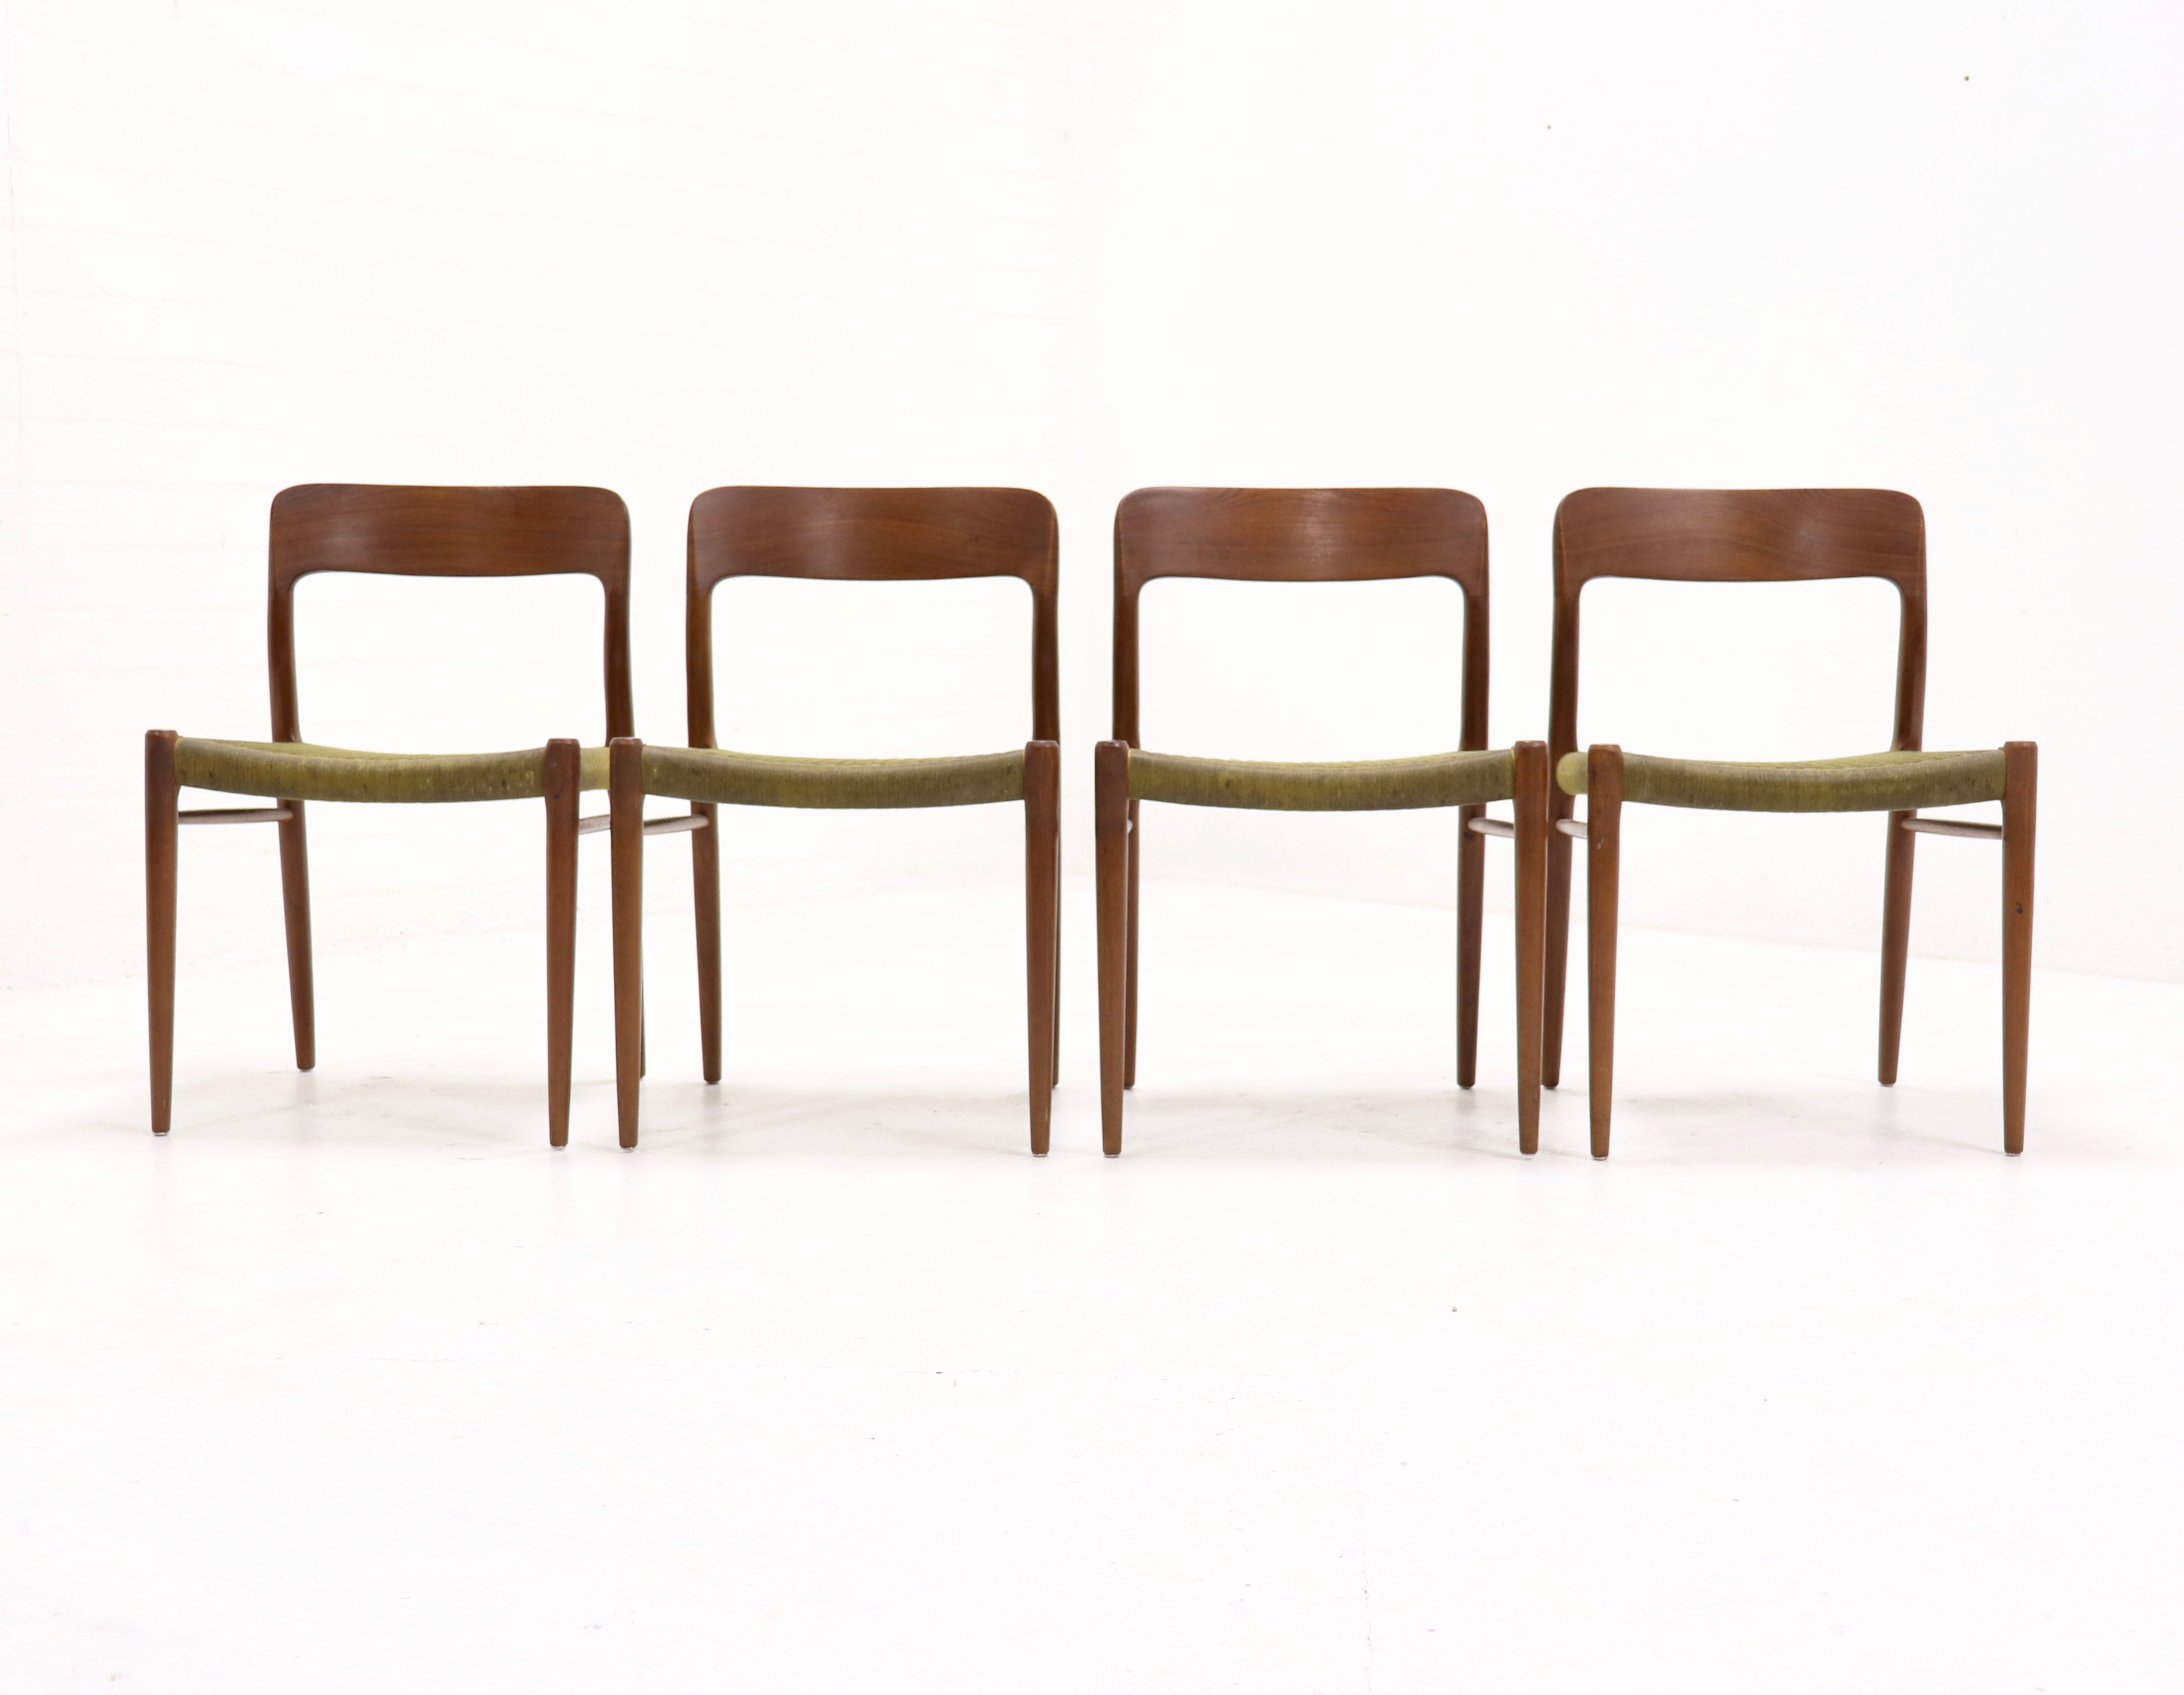 Set of 4 teak no 75 dining chairs by n o møller 1960s